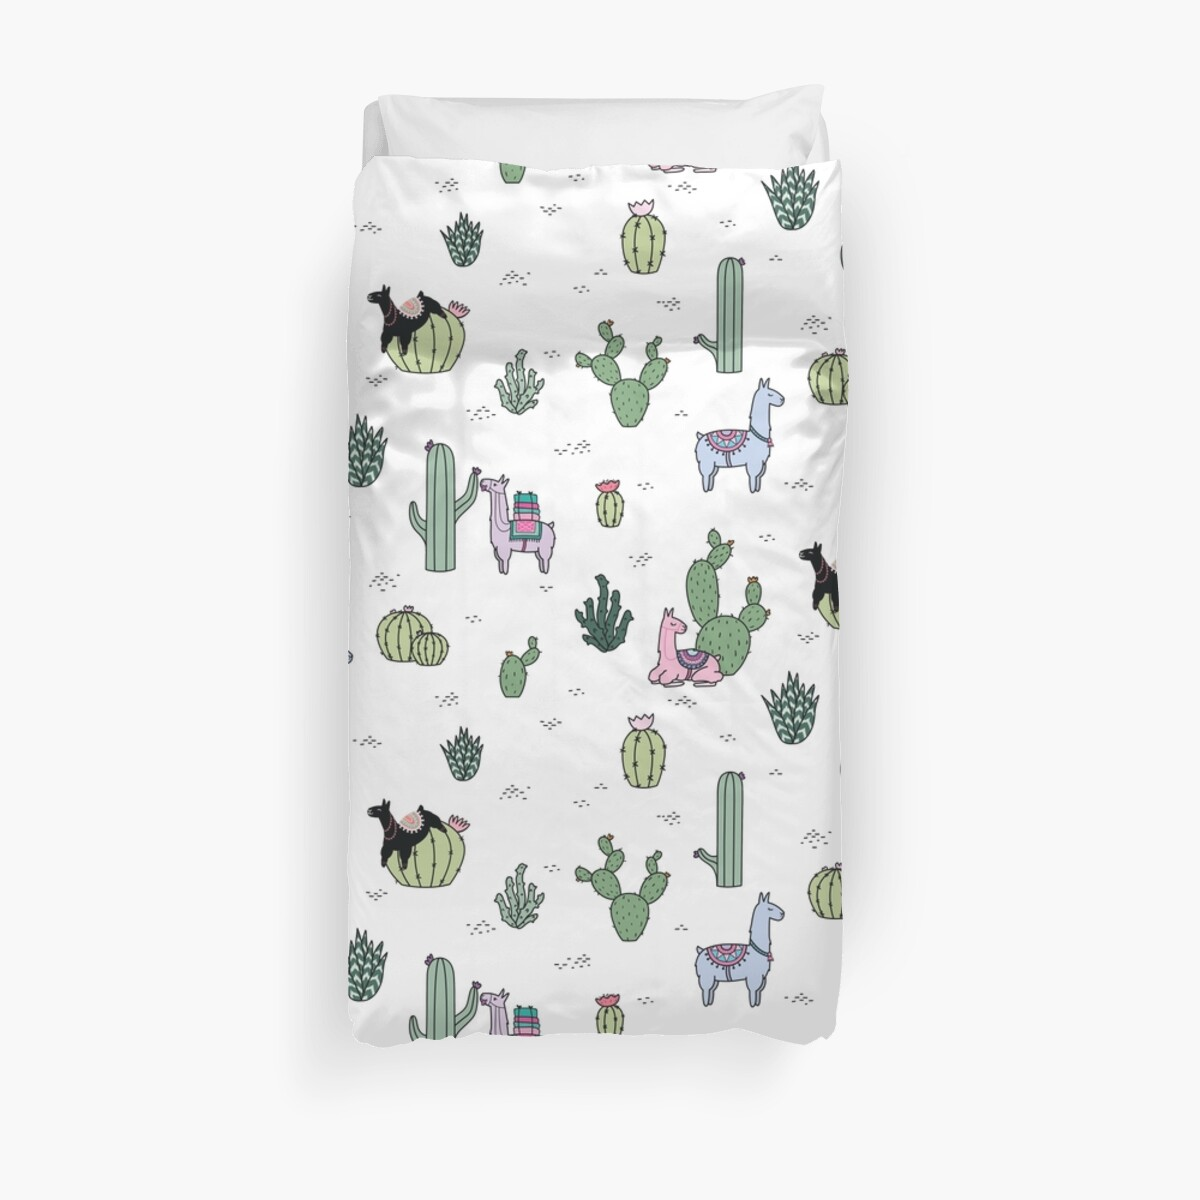 cactus lamas housses de couette par shopzoki redbubble. Black Bedroom Furniture Sets. Home Design Ideas